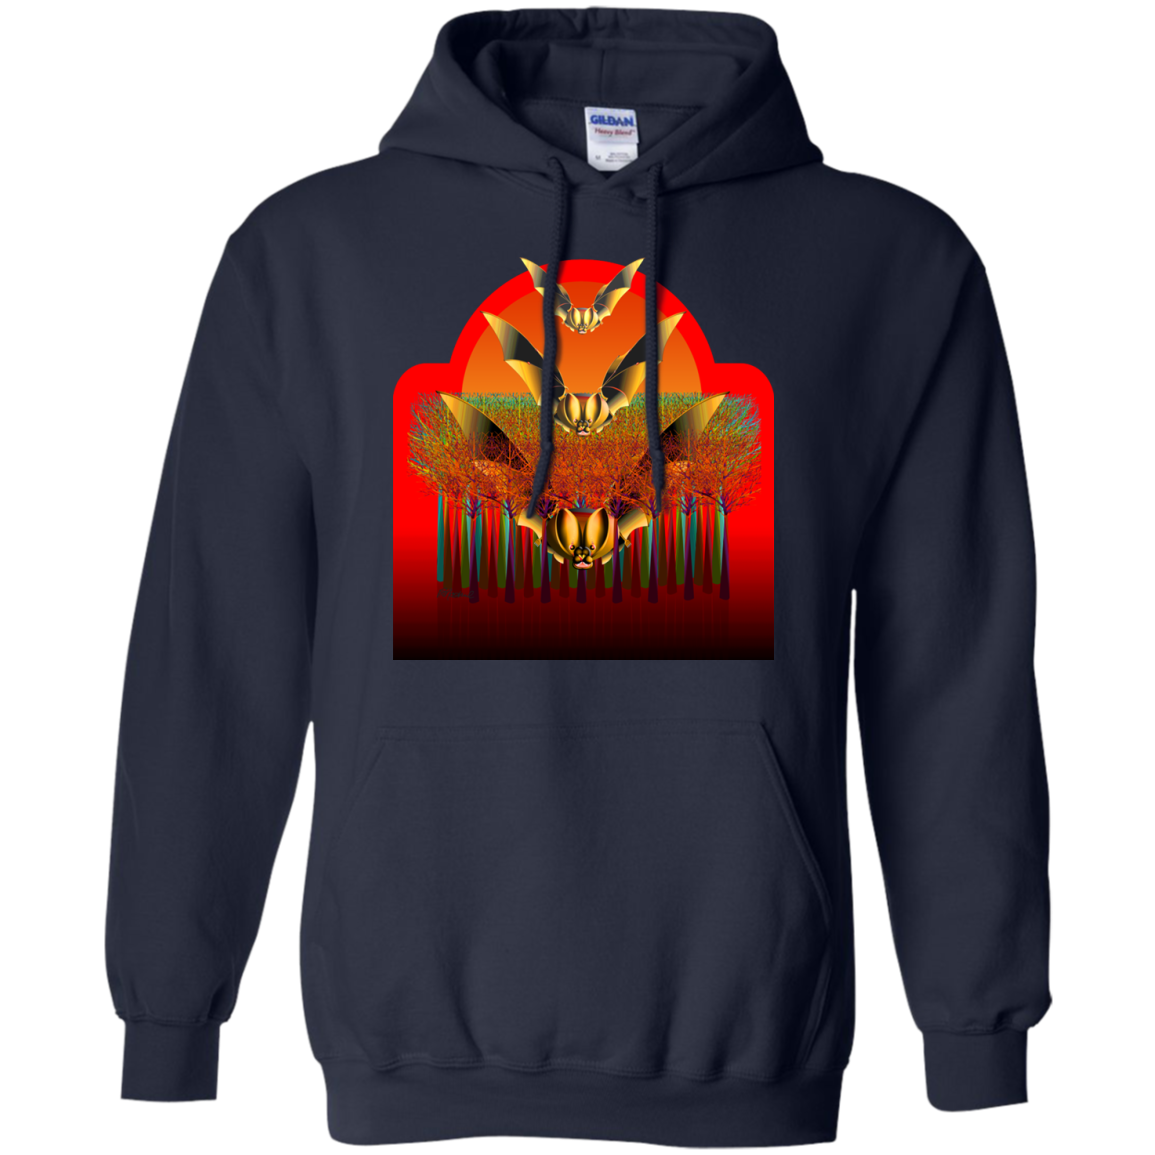 Bat Forest Sweatshirt T-Shirt & Hoodie - The Sun Cat